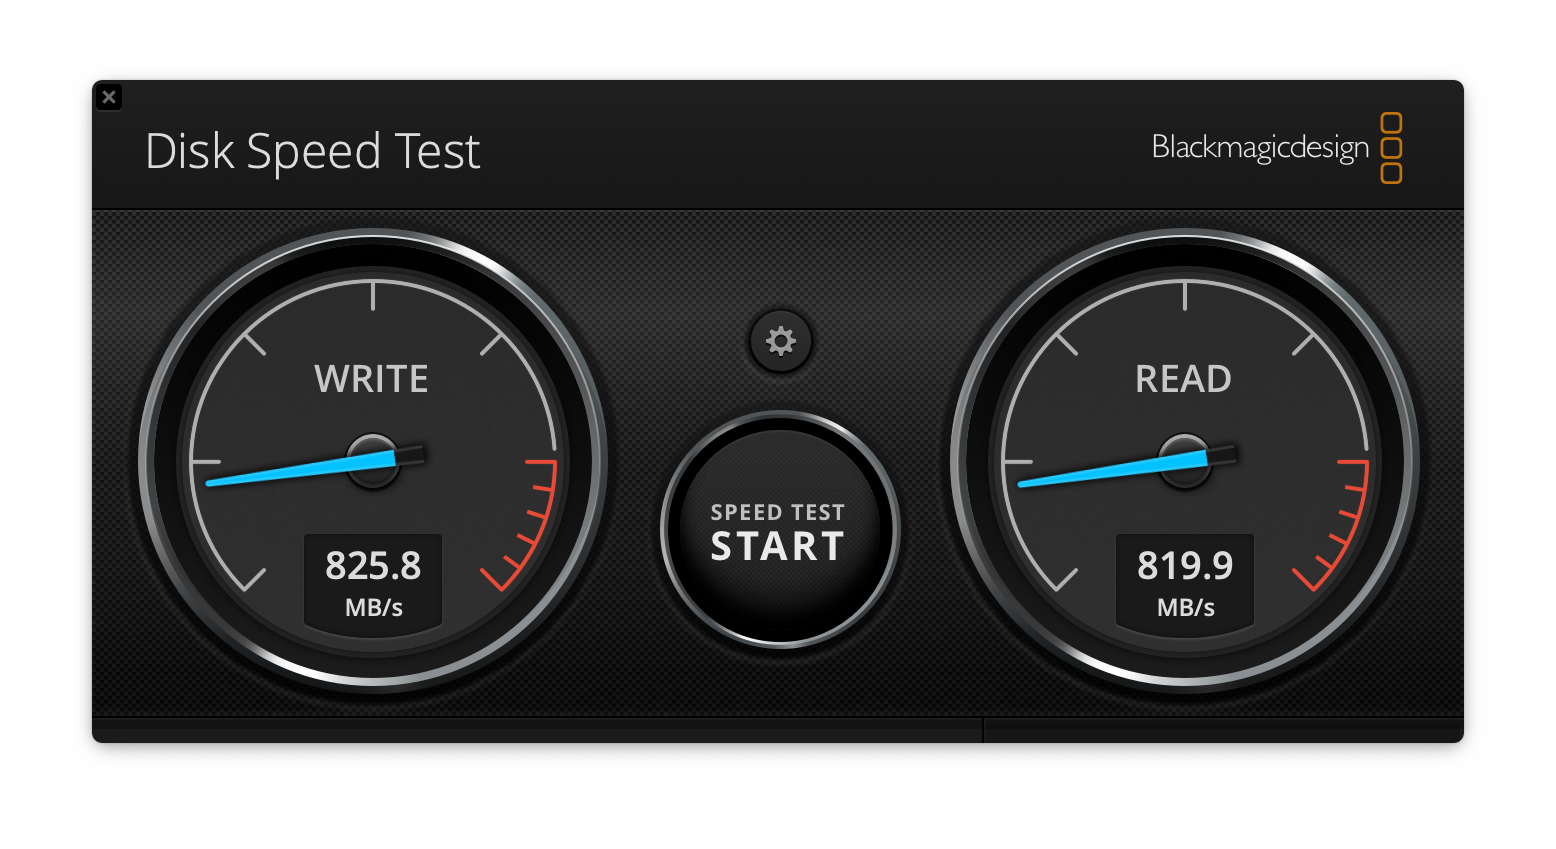 Write: 825.8MB/s, Read: 819.9MB/s